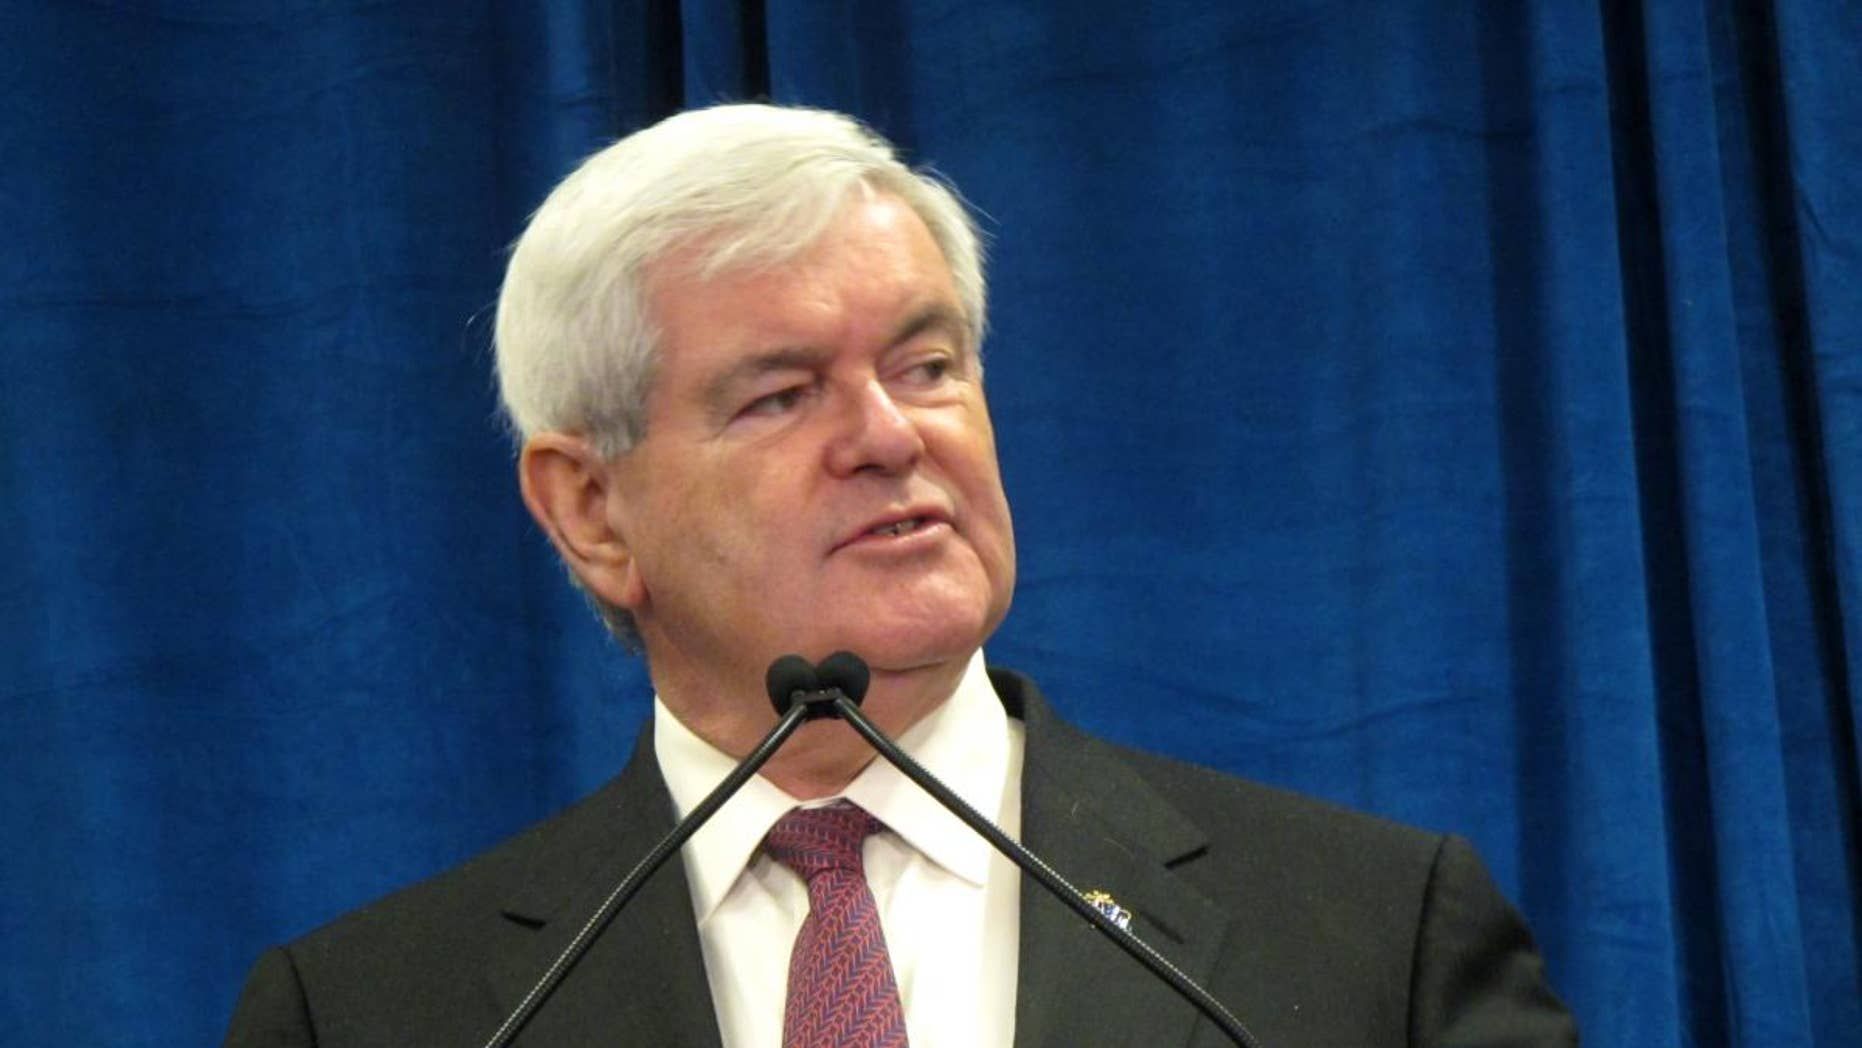 Newt Gingrich speaks to employees of Nationwide Insurance before signing the Americans for Securing the Border's Fence Pledge  (Fox)